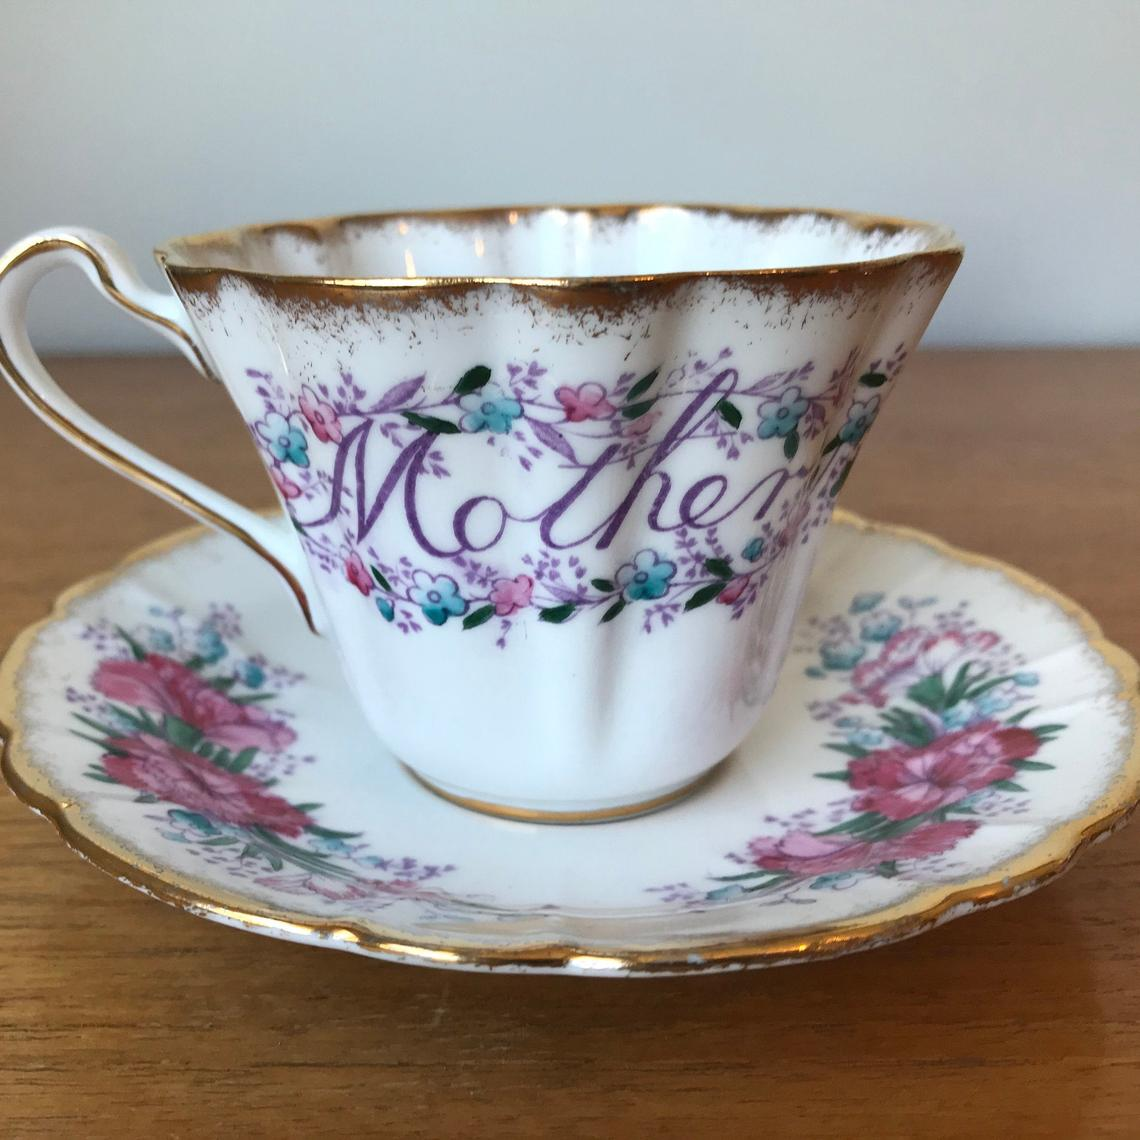 Mother Tea Cup and Saucer, Royal Stafford Special Occasion Series Floral Teacup and Saucer